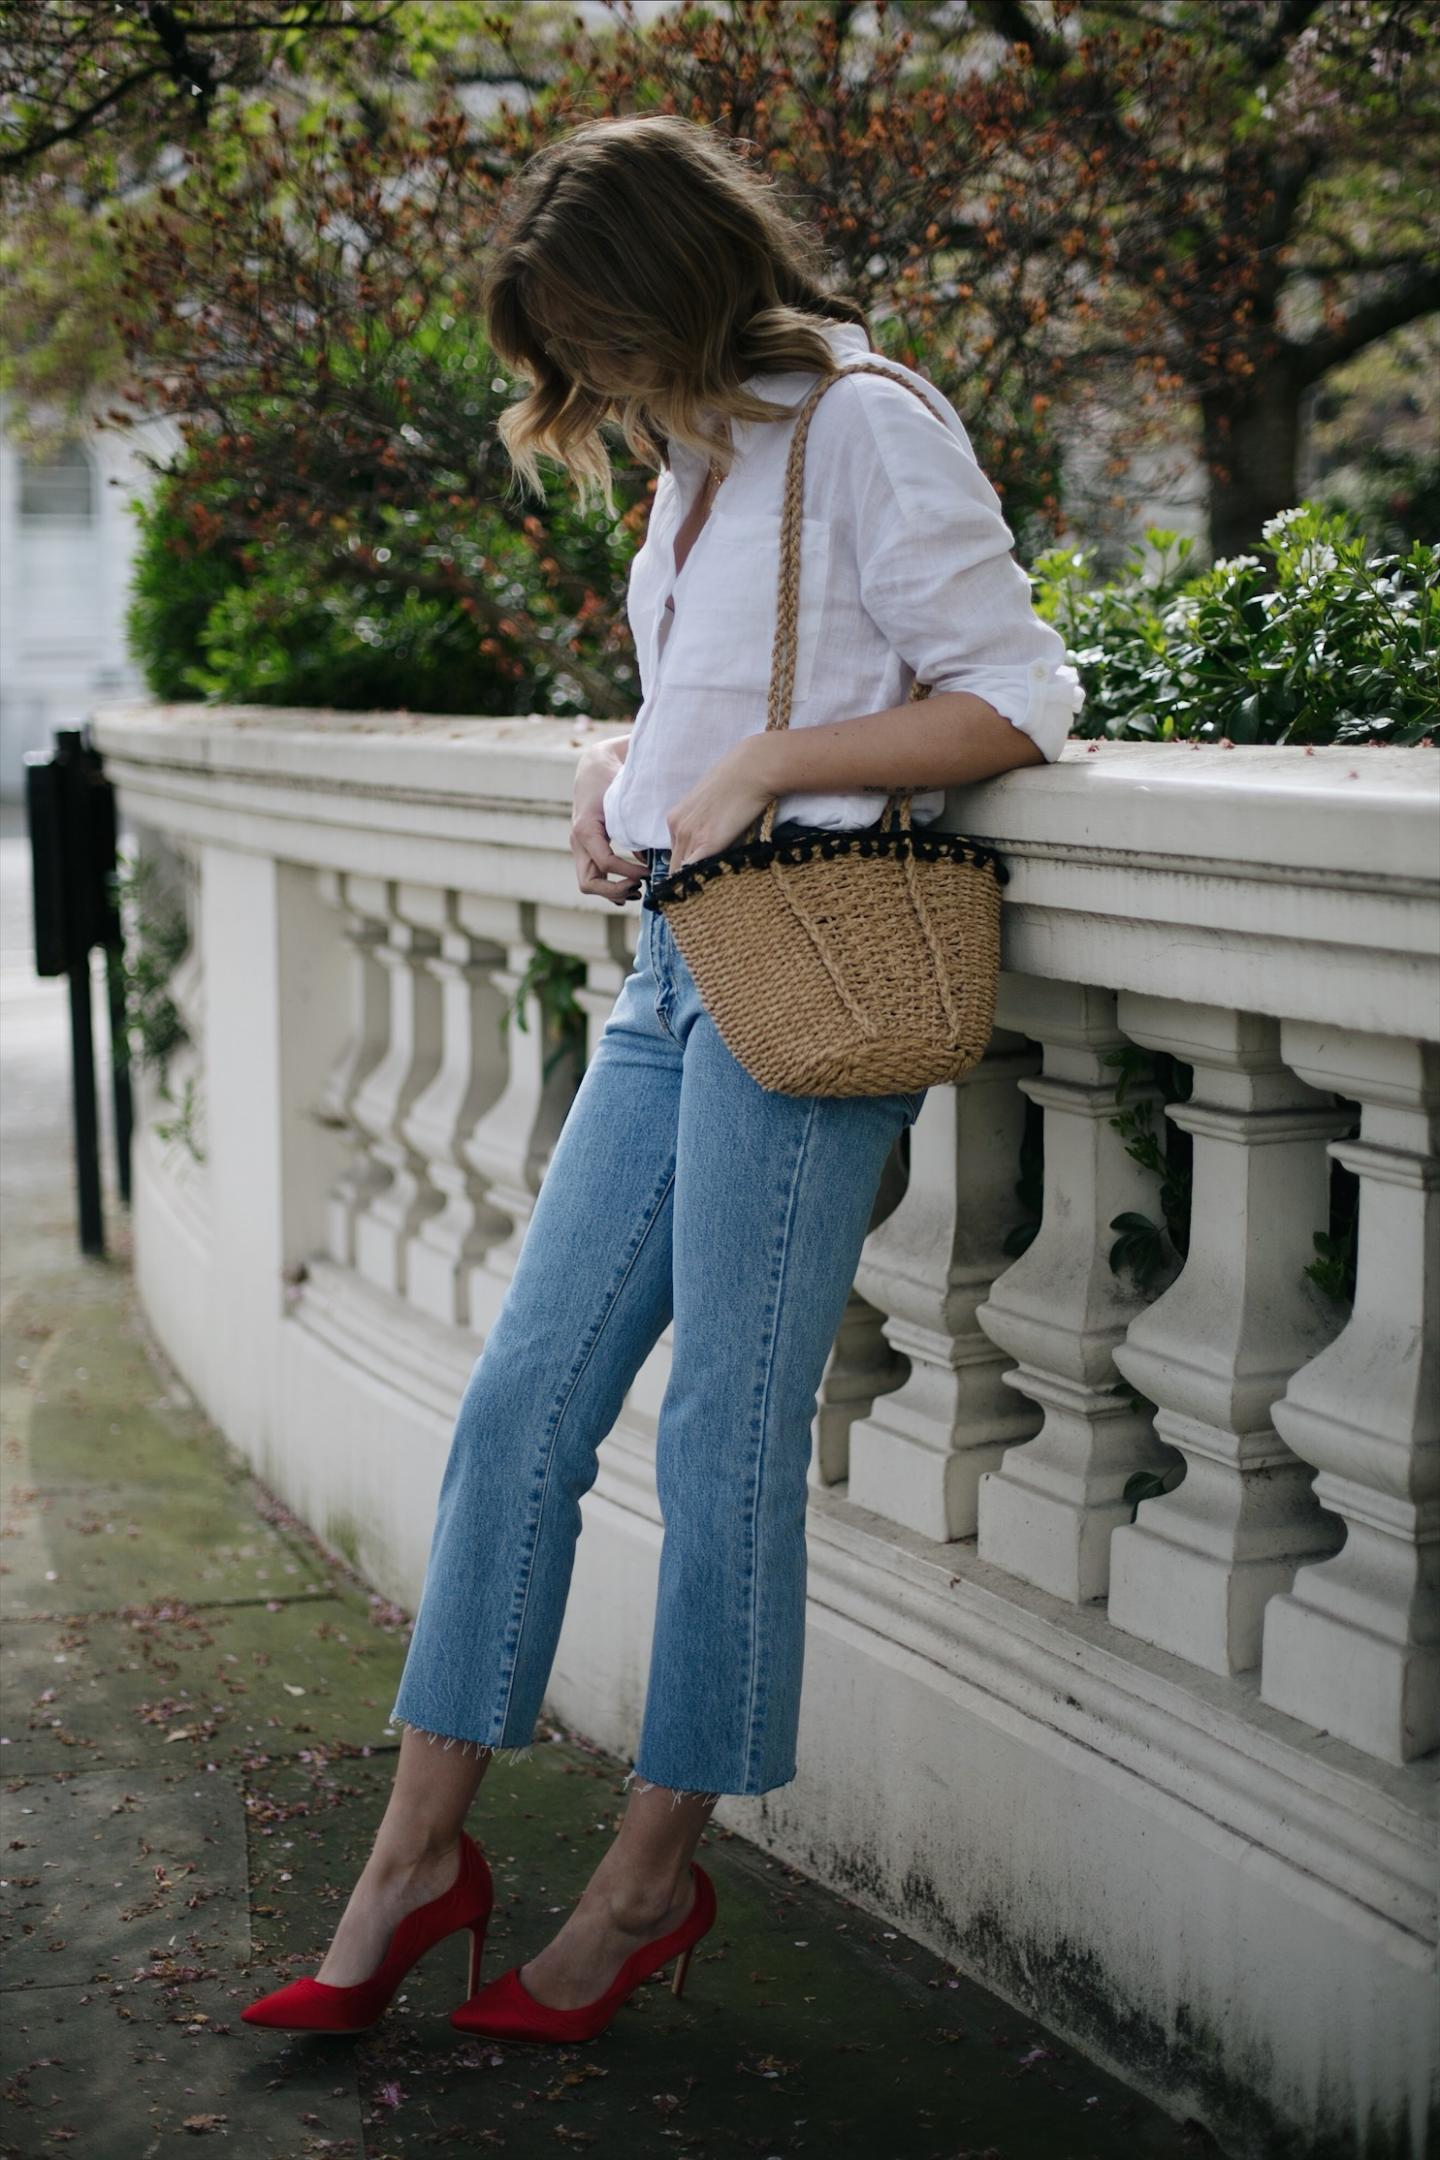 Emma Hill wears Dune loves Rupert Sanderson red 'Princess' heels, light wash cropped jeans, white shirt, straw bag with pom poms